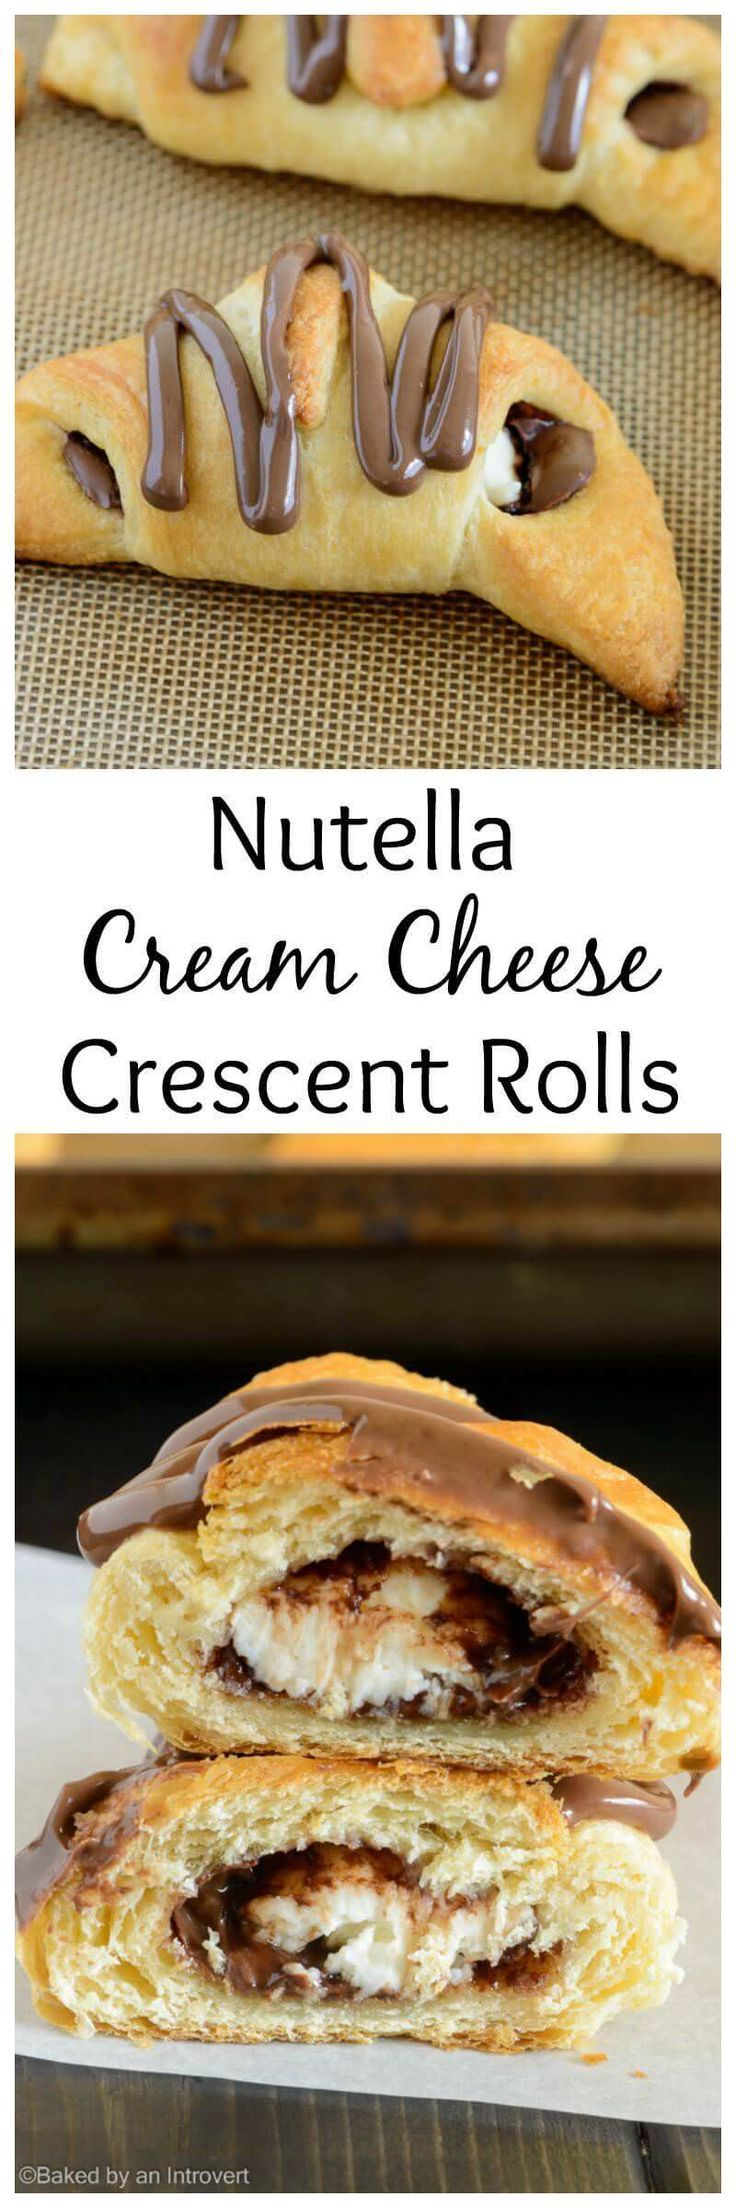 These Nutella cream cheese crescent rolls could not be easier. Filled with rich Nutella and chunks of cream cheese, topped with more Nutella, and only take 20 minutes to make!